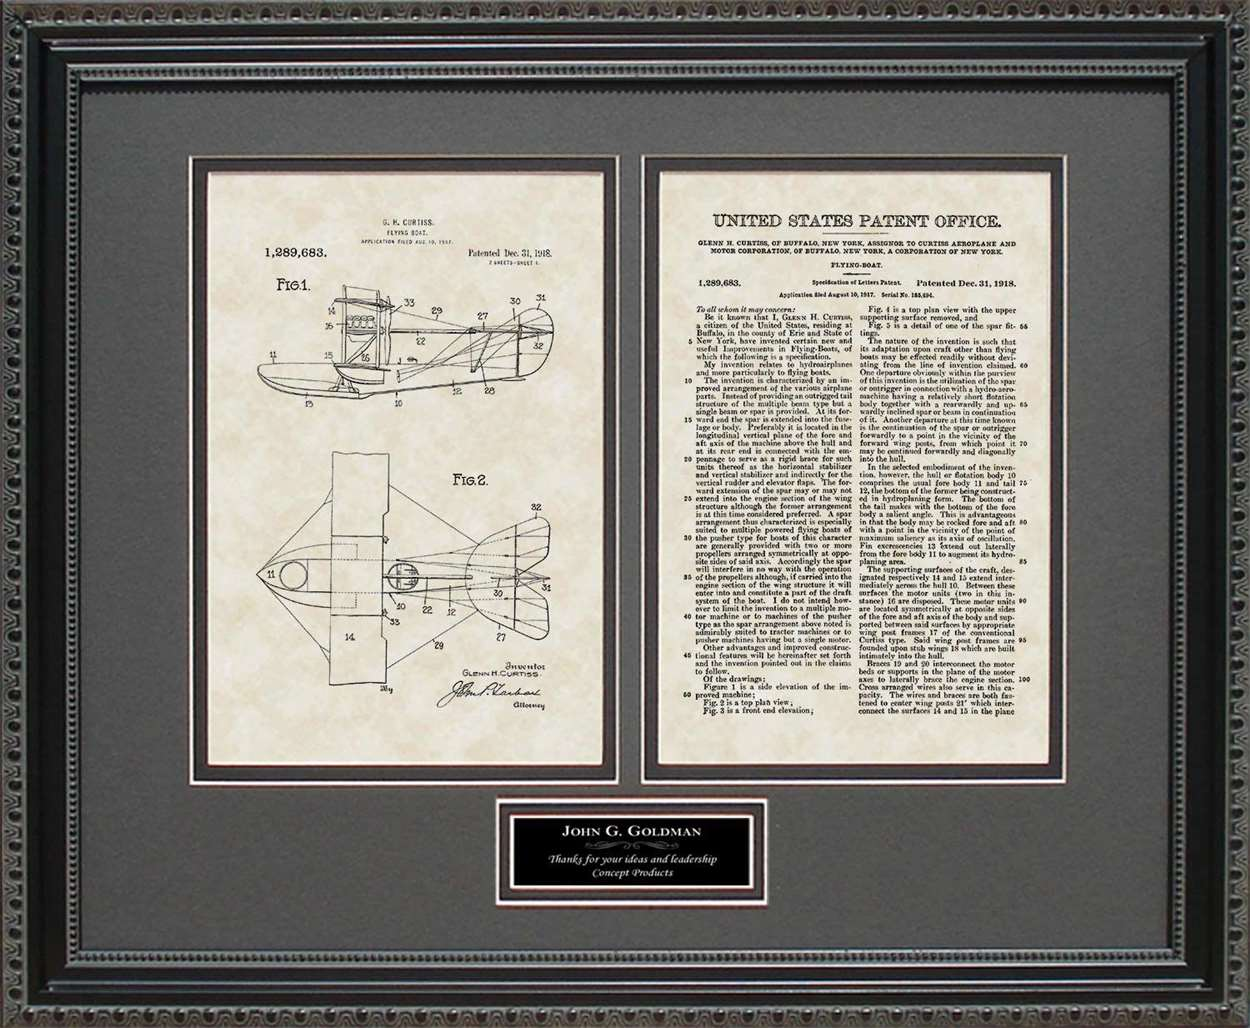 Personalized Flying Boat Patent, Art & Copy, Curtiss, 1918